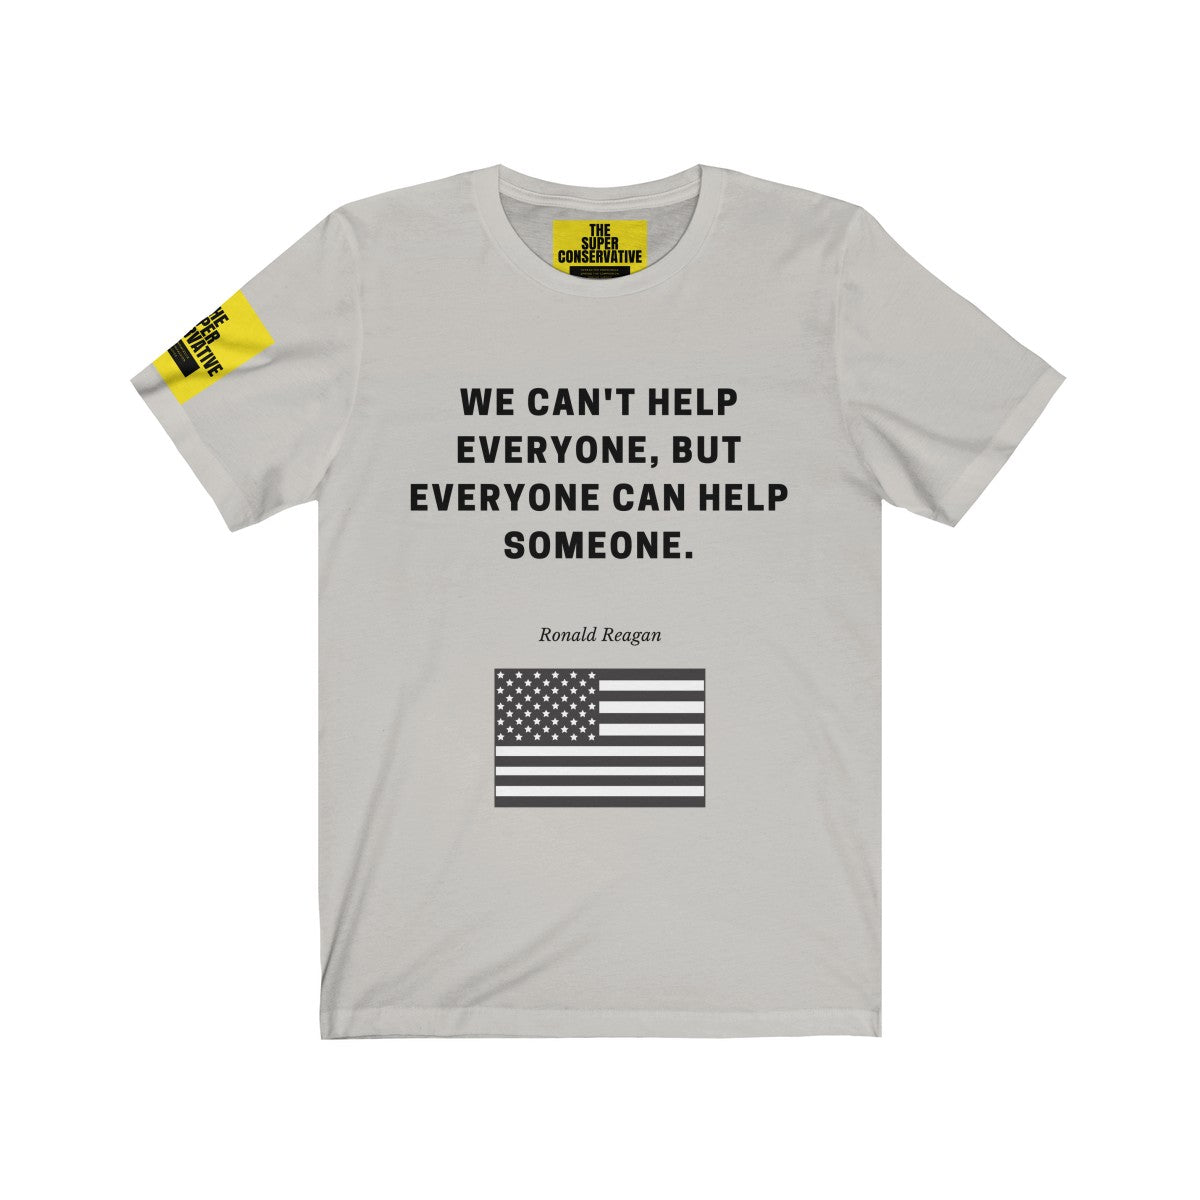 Ronald Reagan - We Can't Help Everyone - T-shirt - Unisex